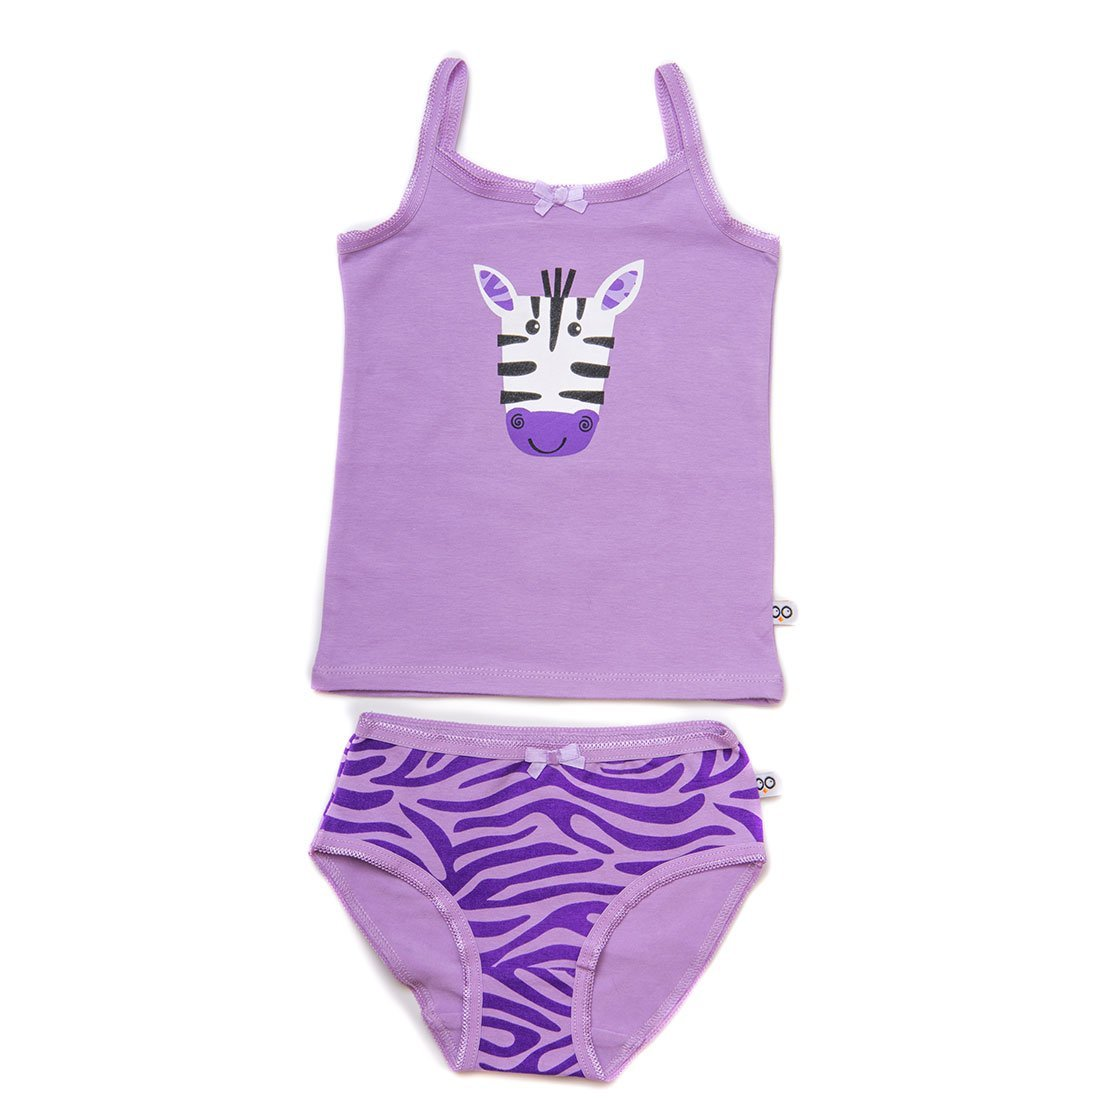 Zoocchini Cami/Panty Ziggy the Zebra Set - Lullaby's Boutique